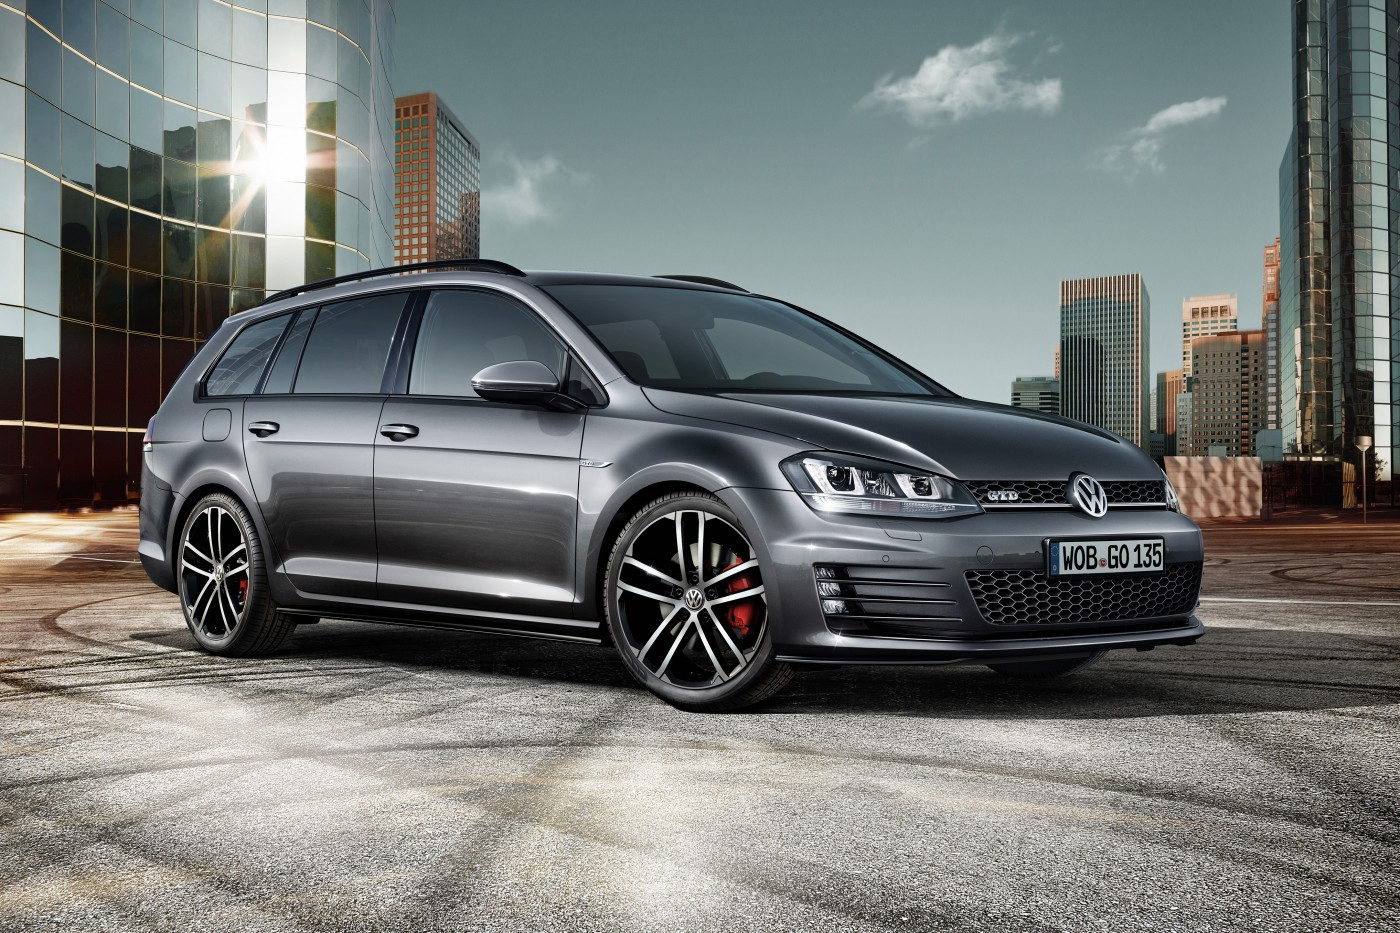 The 2015 Volkswagen Golf GTD wagon has been revealed ahead of its